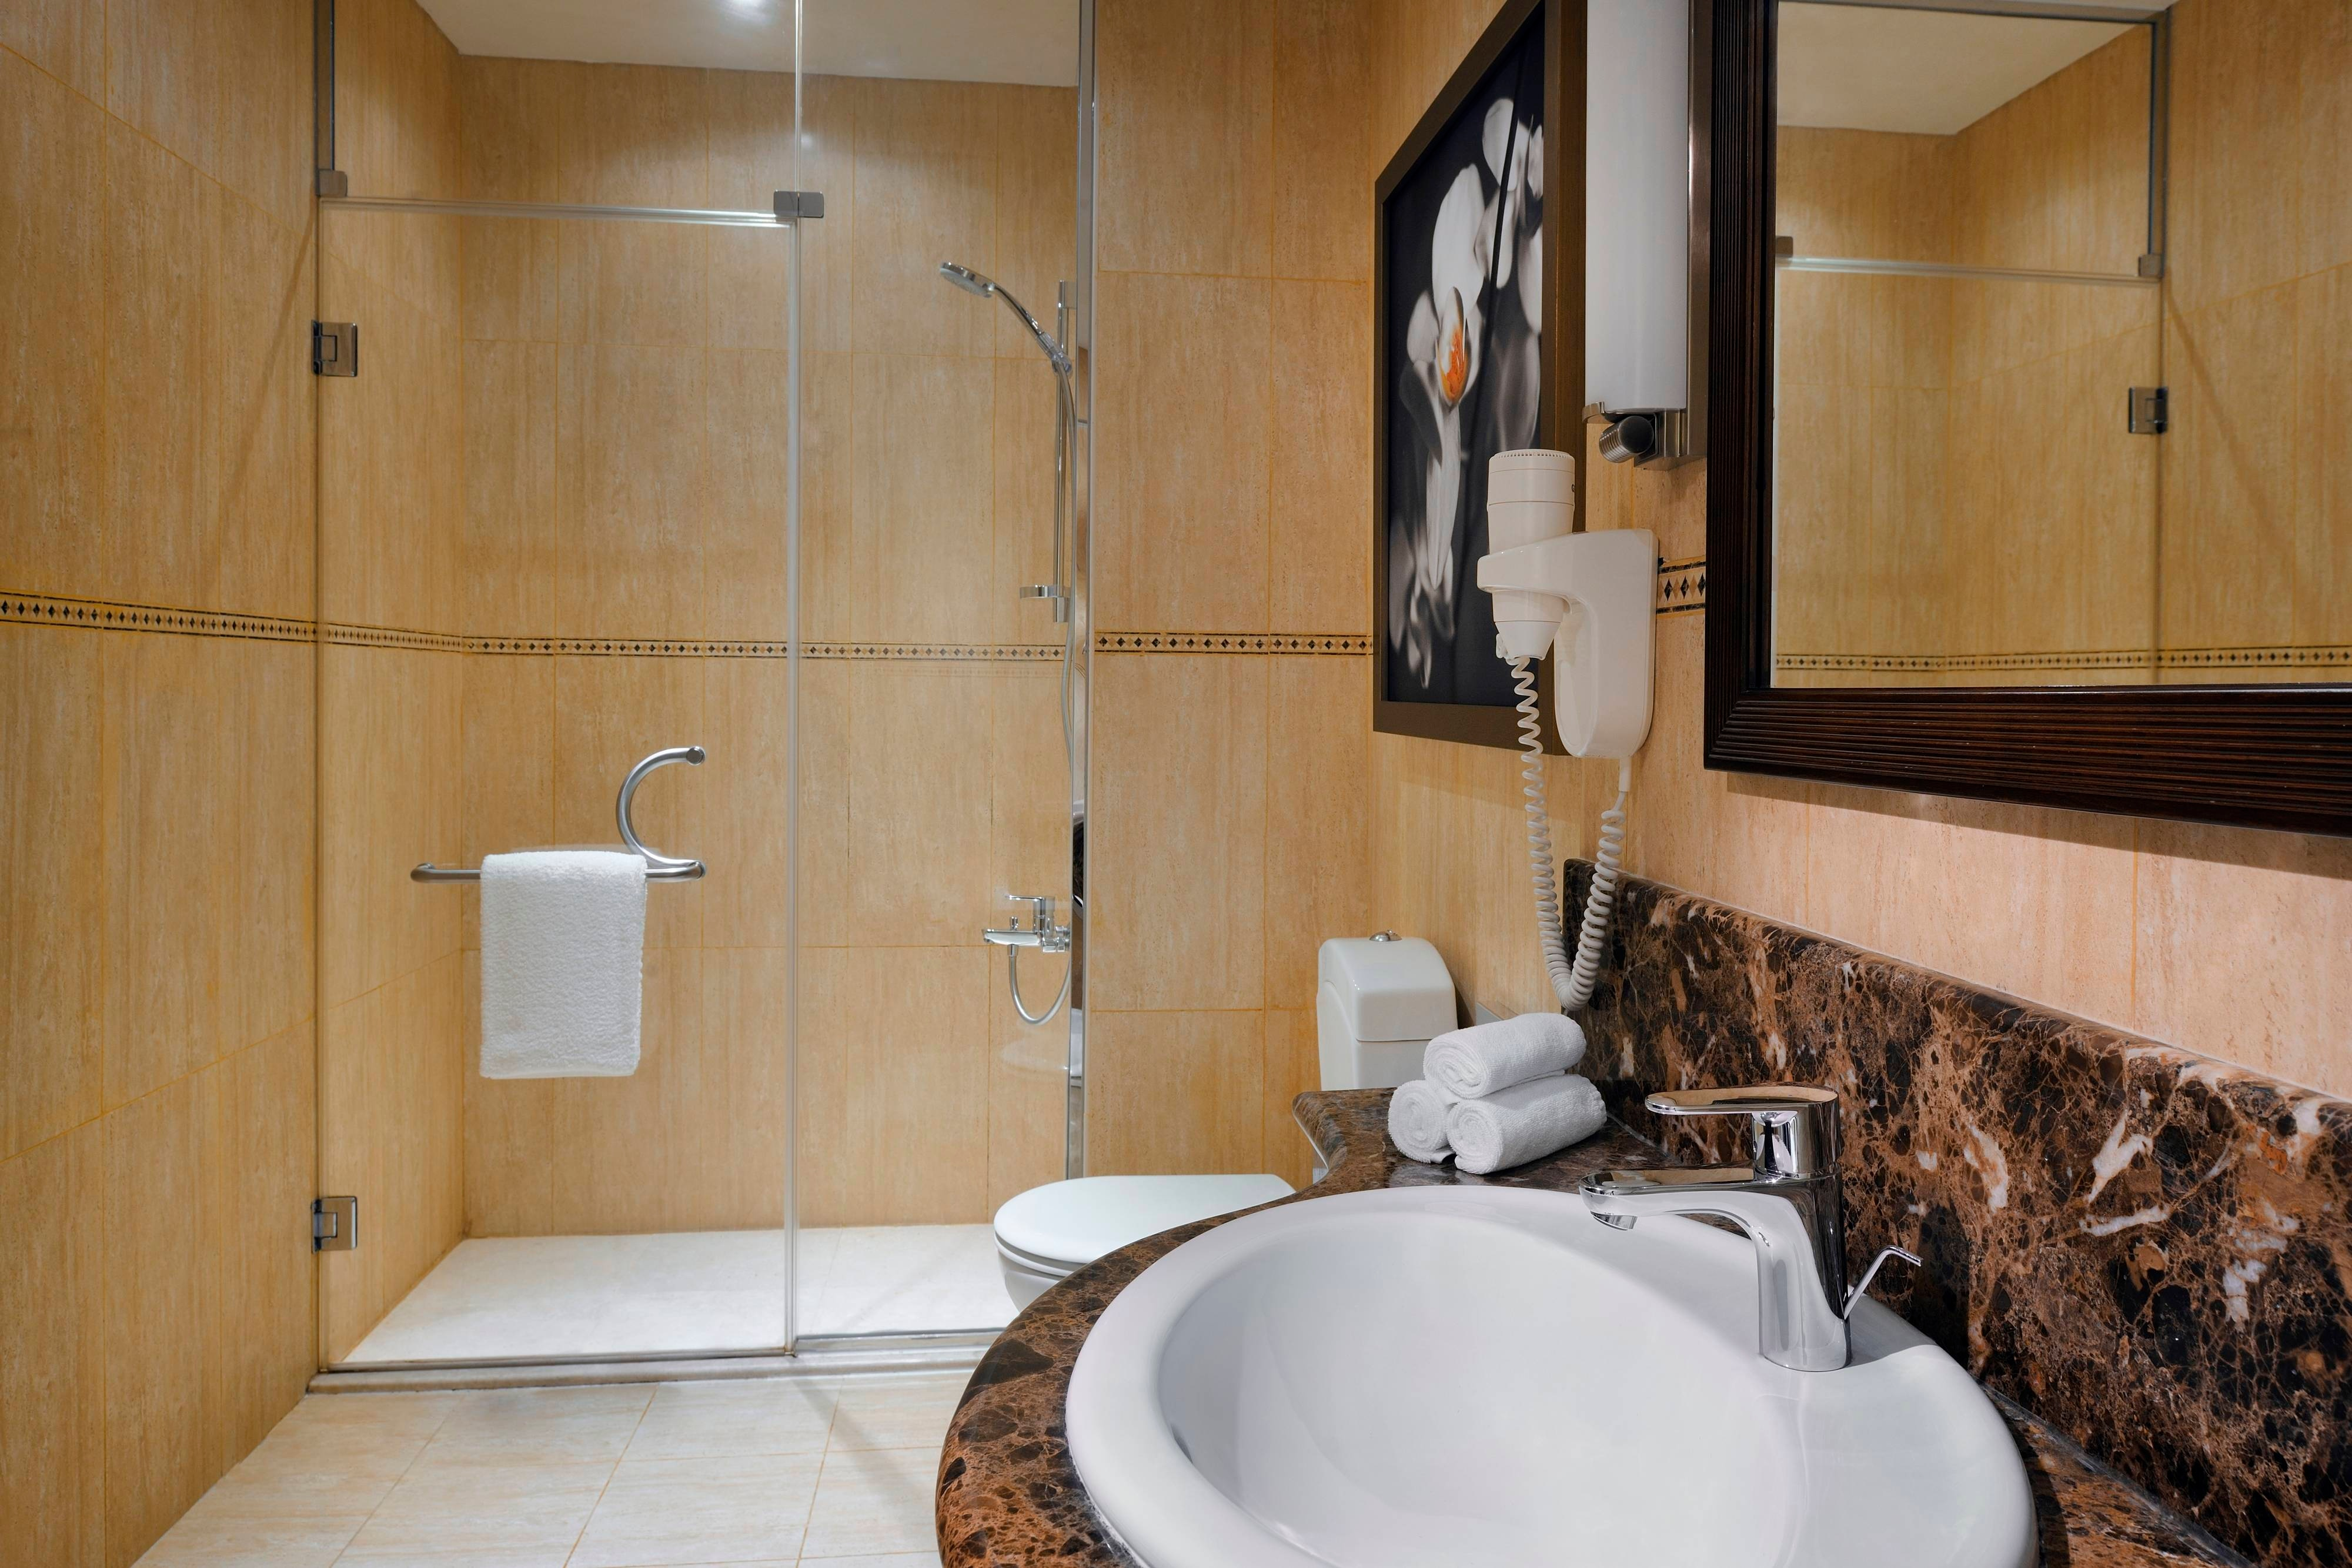 Marriott Salalah Hotel Bathroom